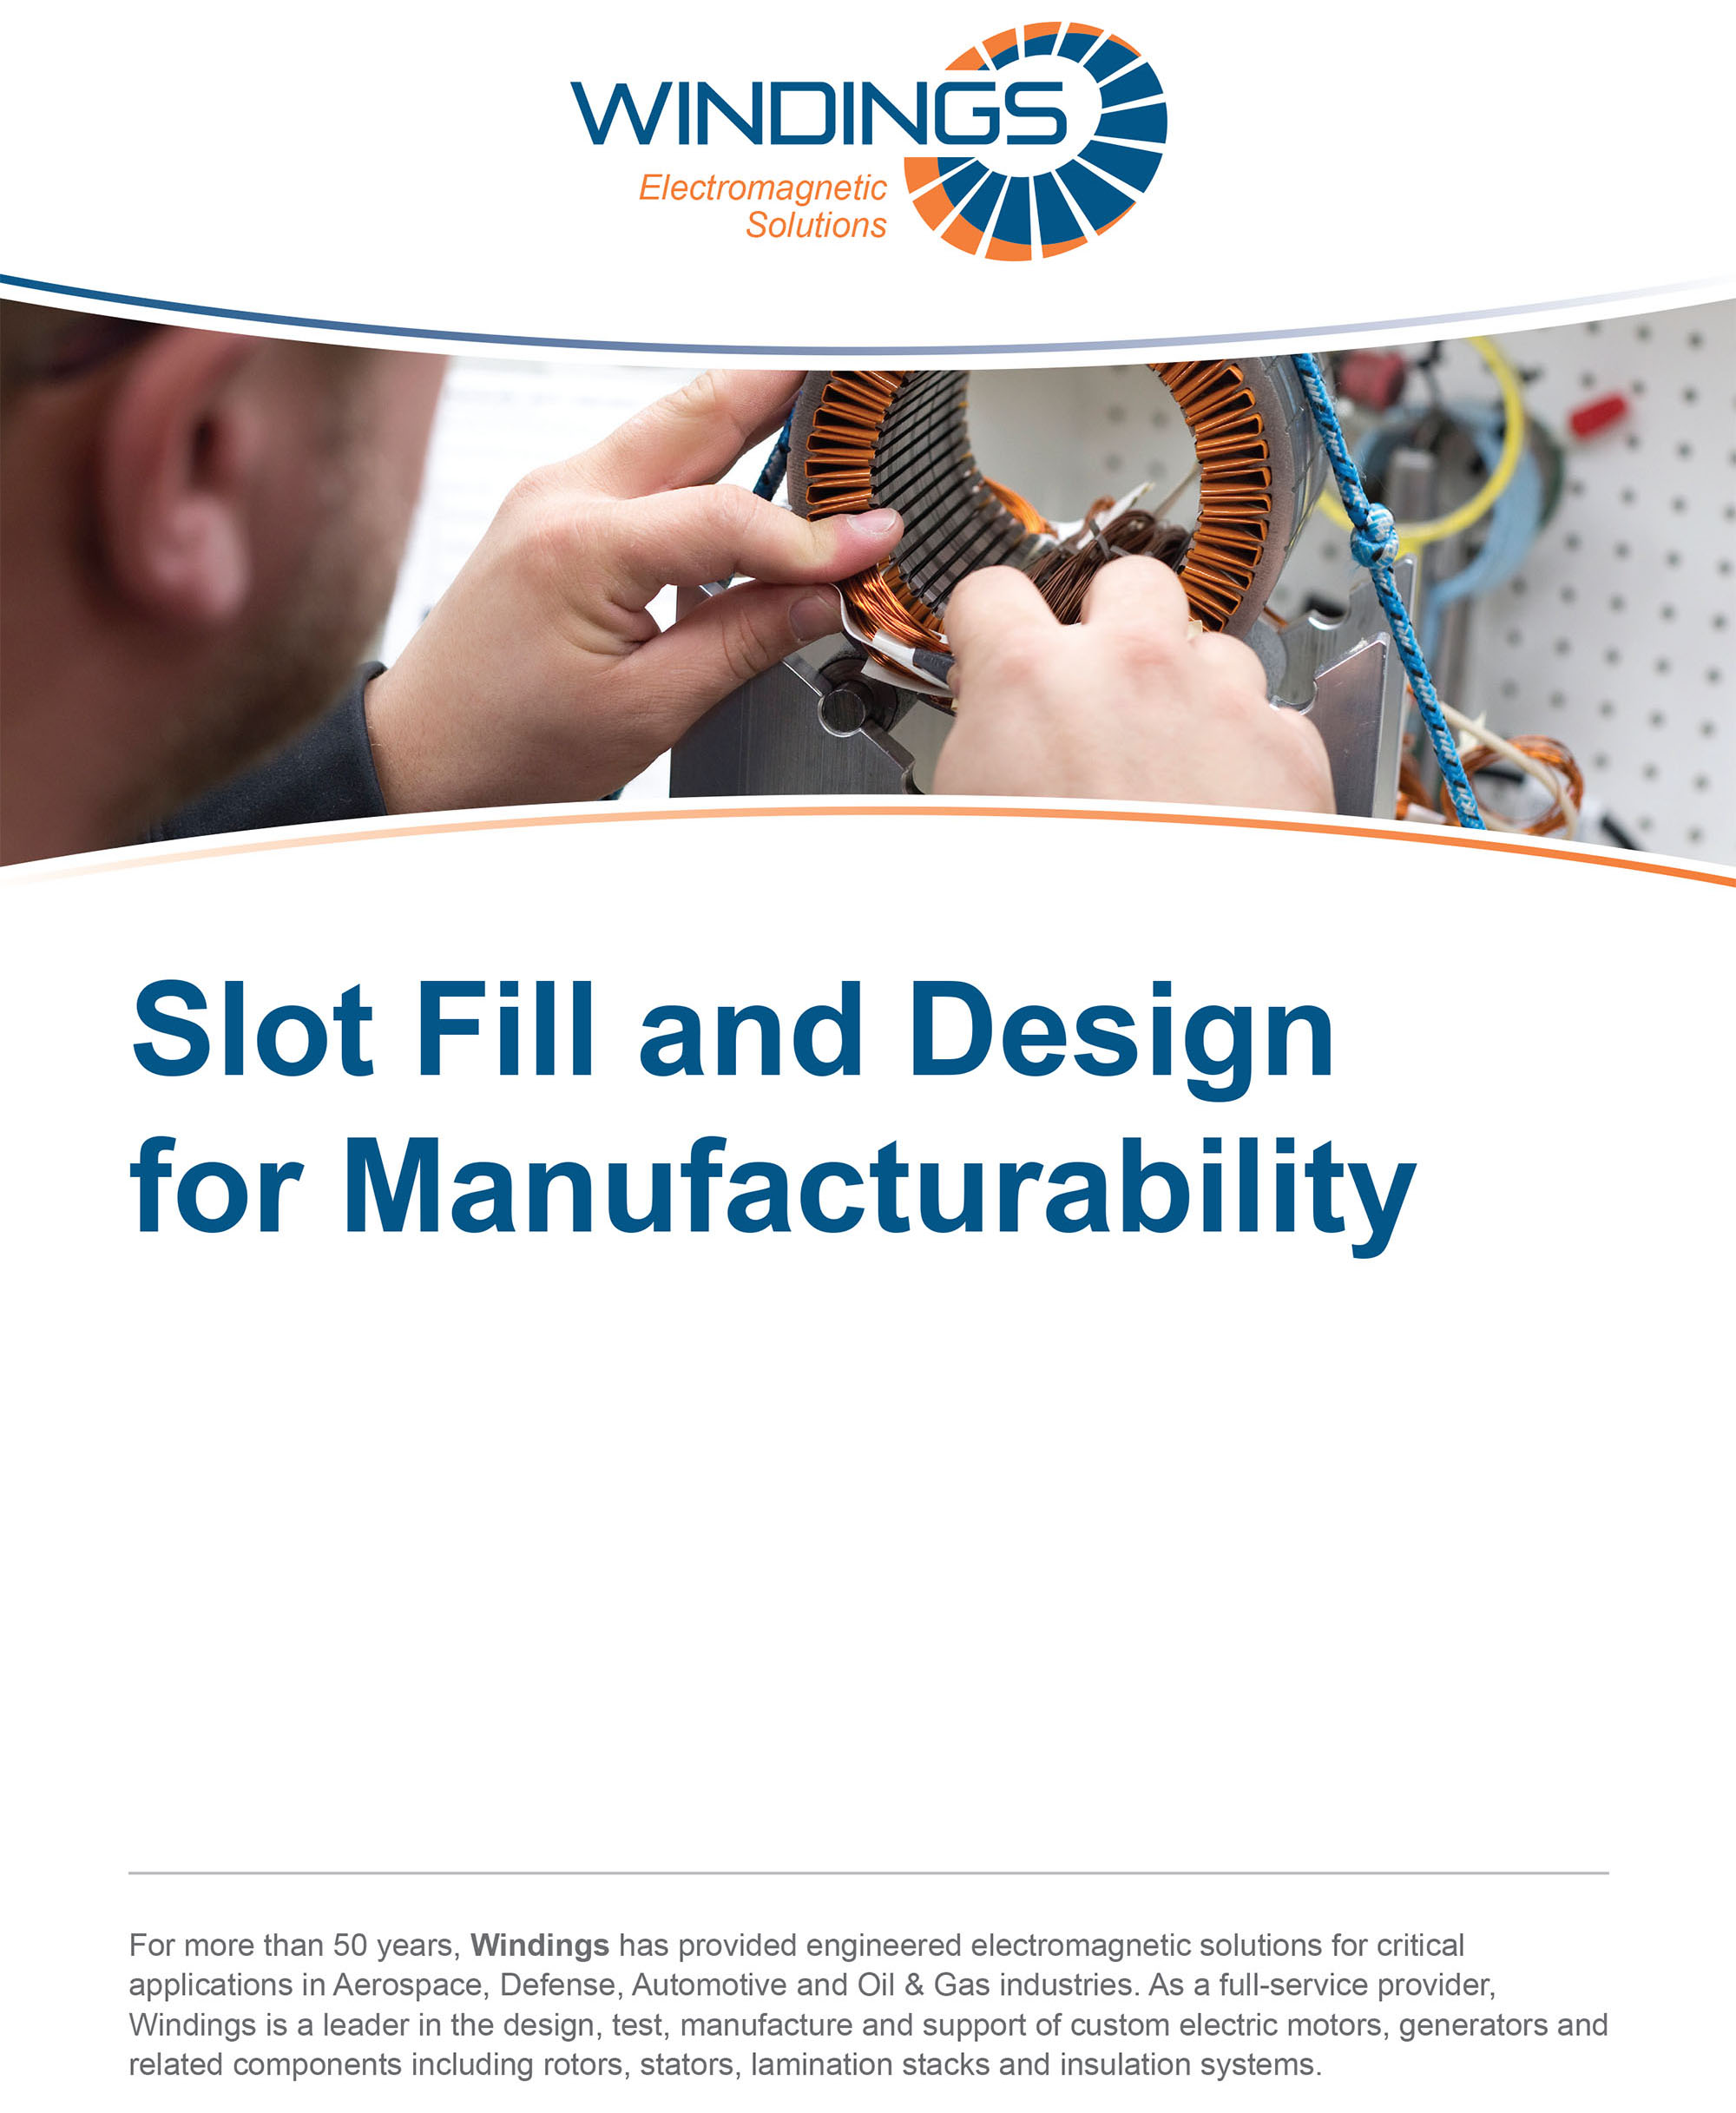 Slot Fill and Design for Manufacturability Whitepaper